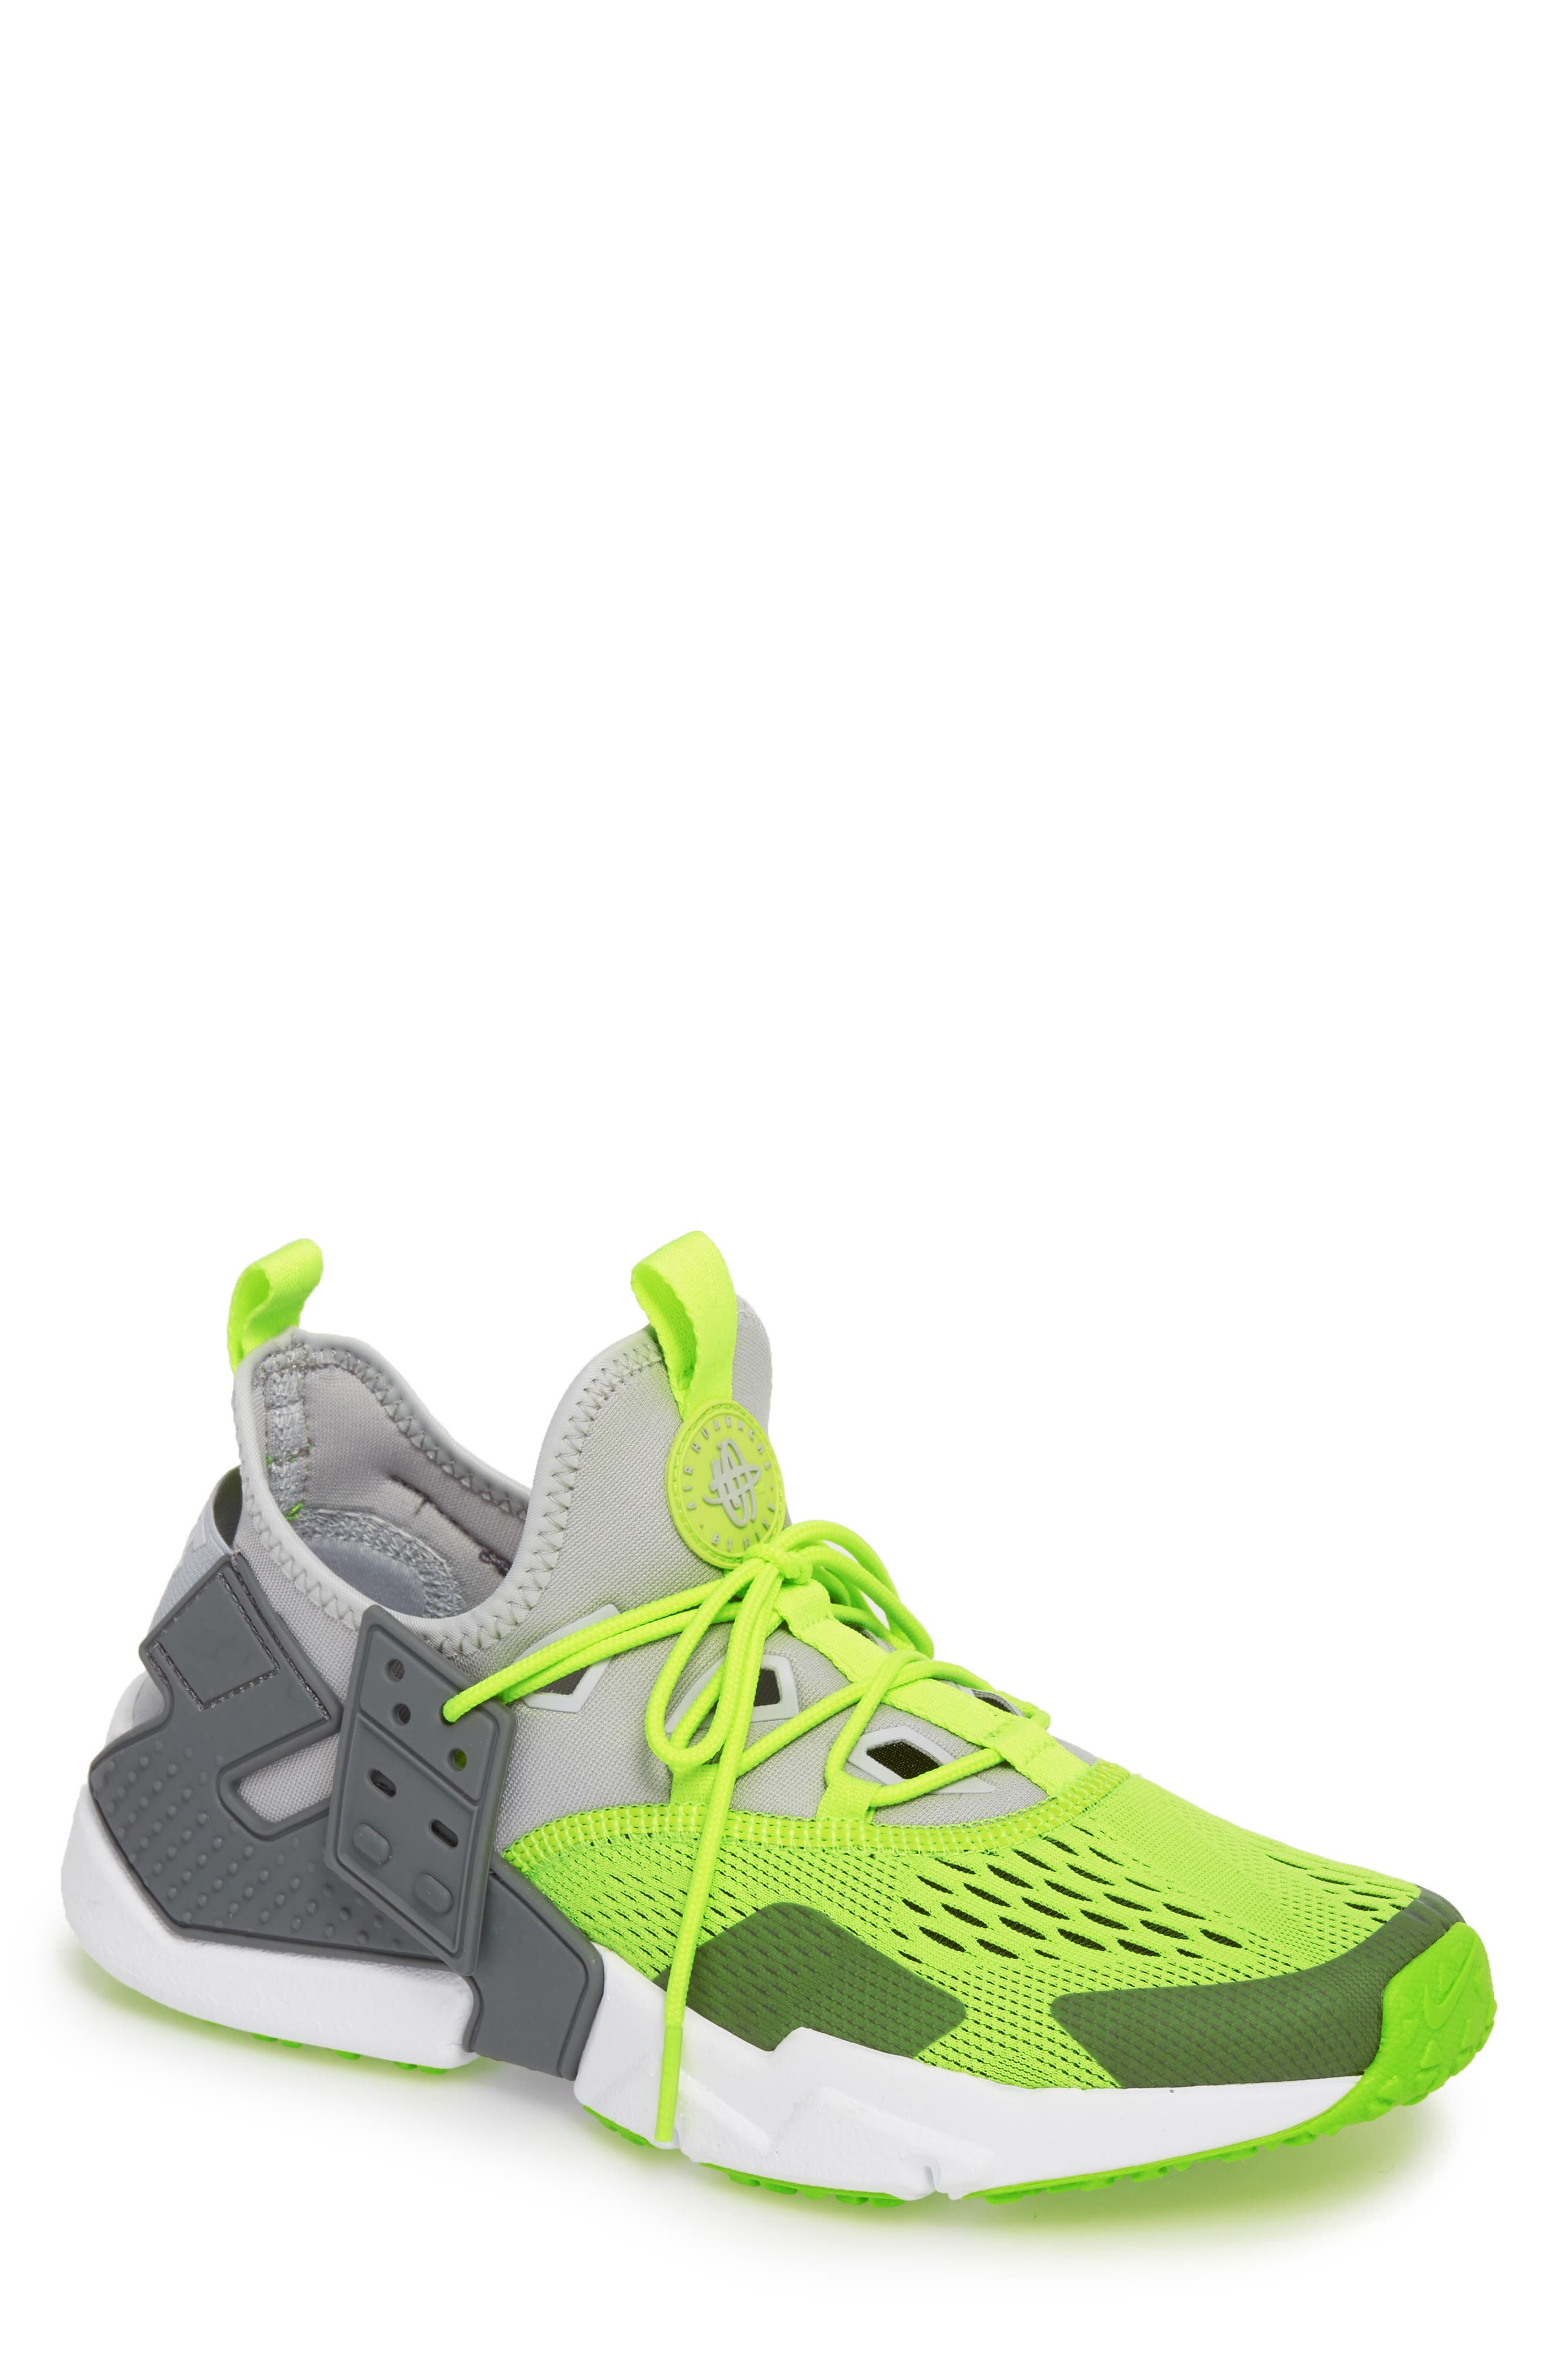 Nike Air Huarache Drift Br Sneaker- Grey